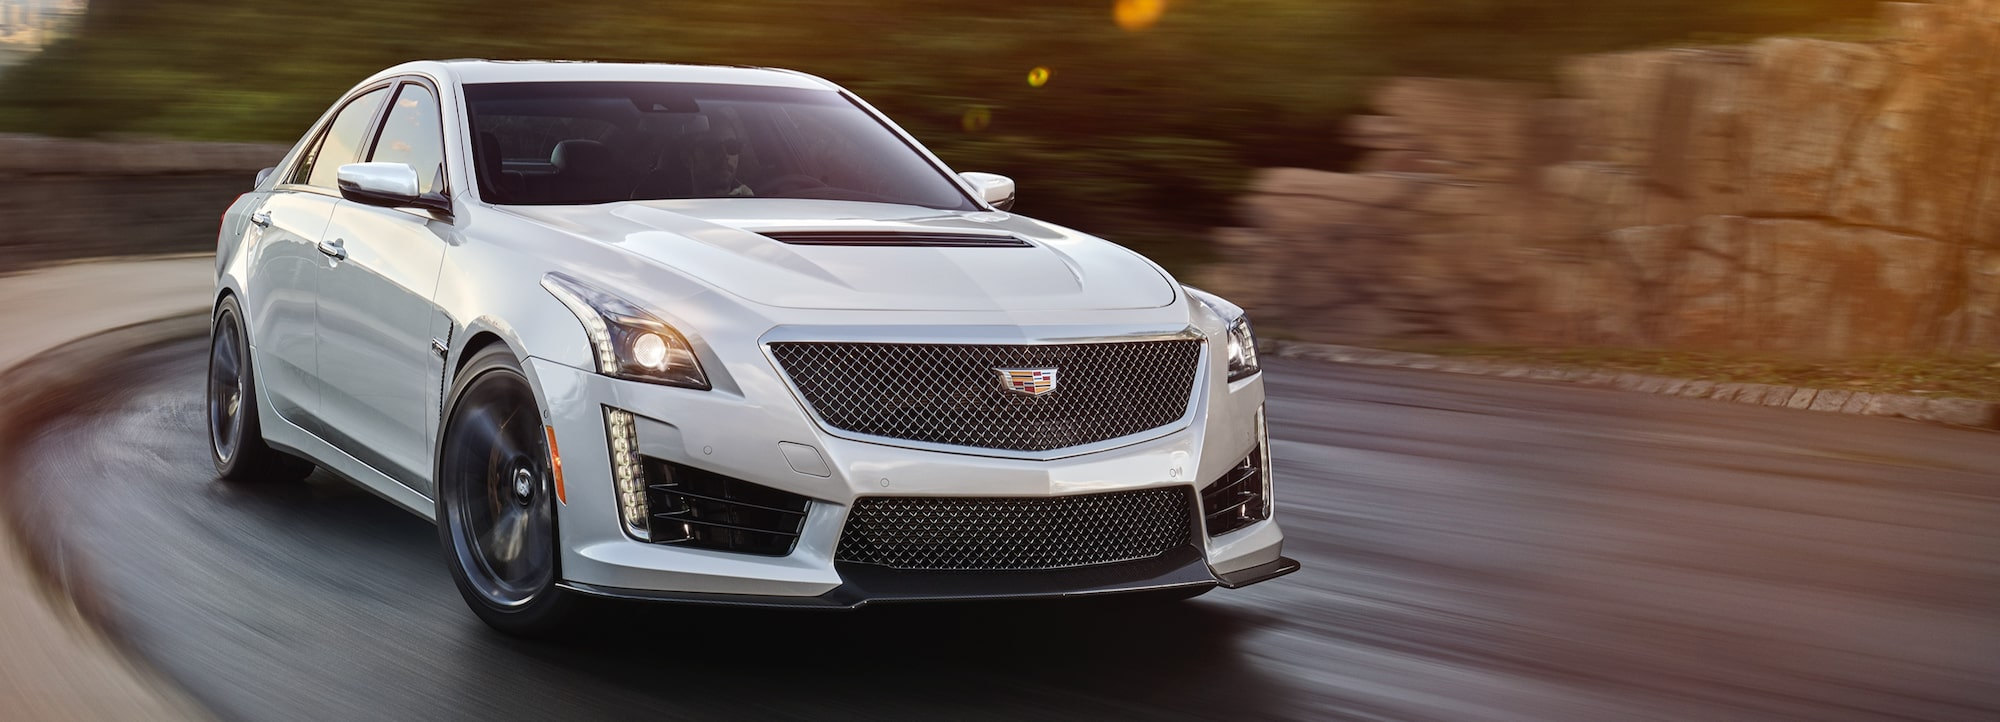 hight resolution of cts v driving on the road